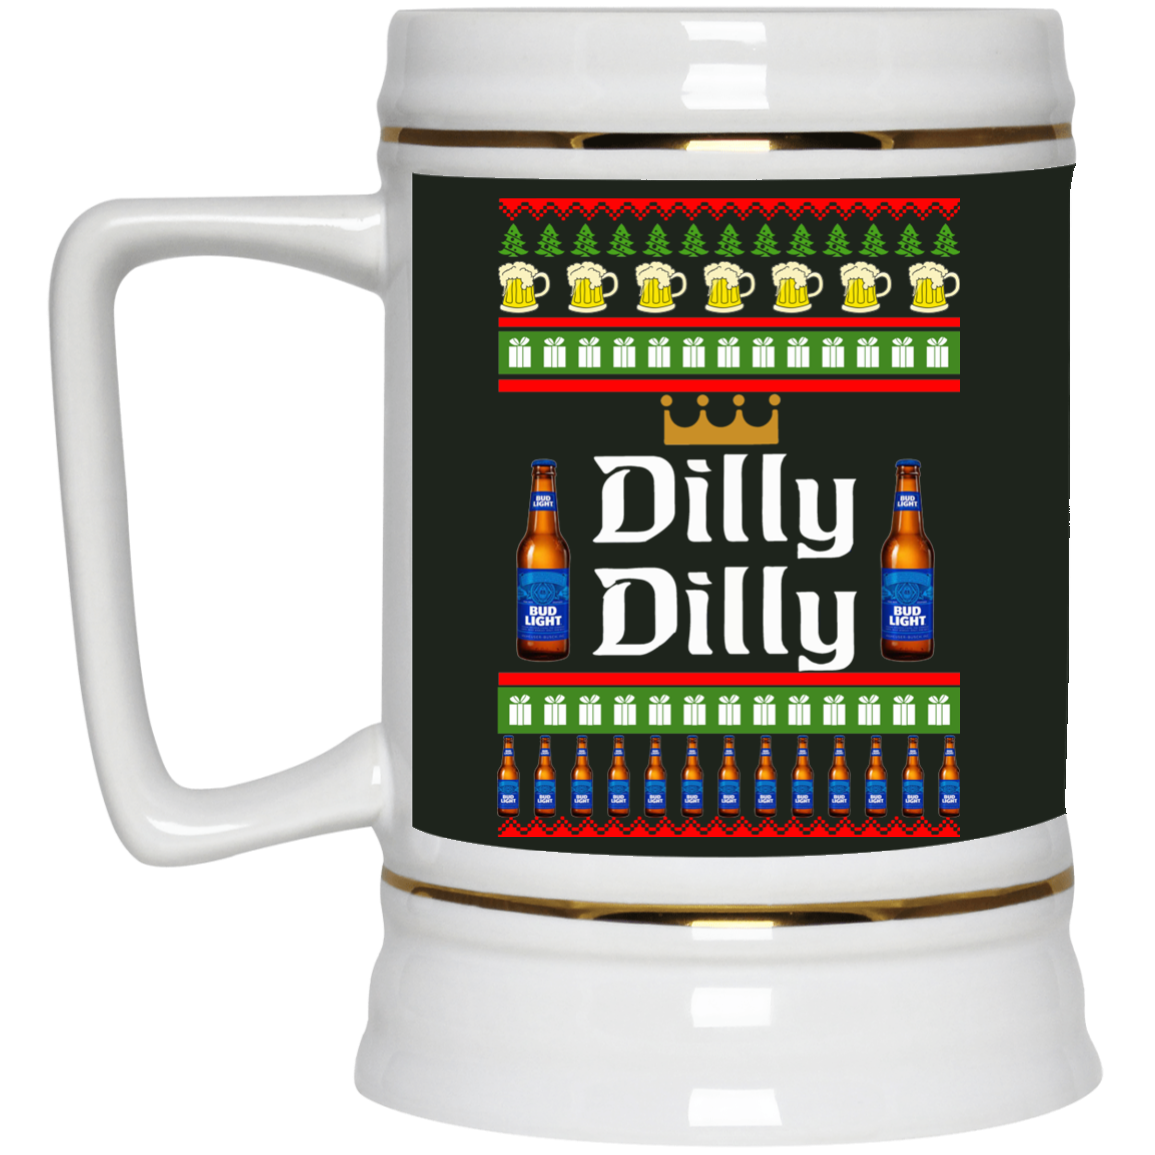 48bc06fb Dilly Dilly Beer Mugs Related Keywords & Suggestions - Dilly Dilly ...